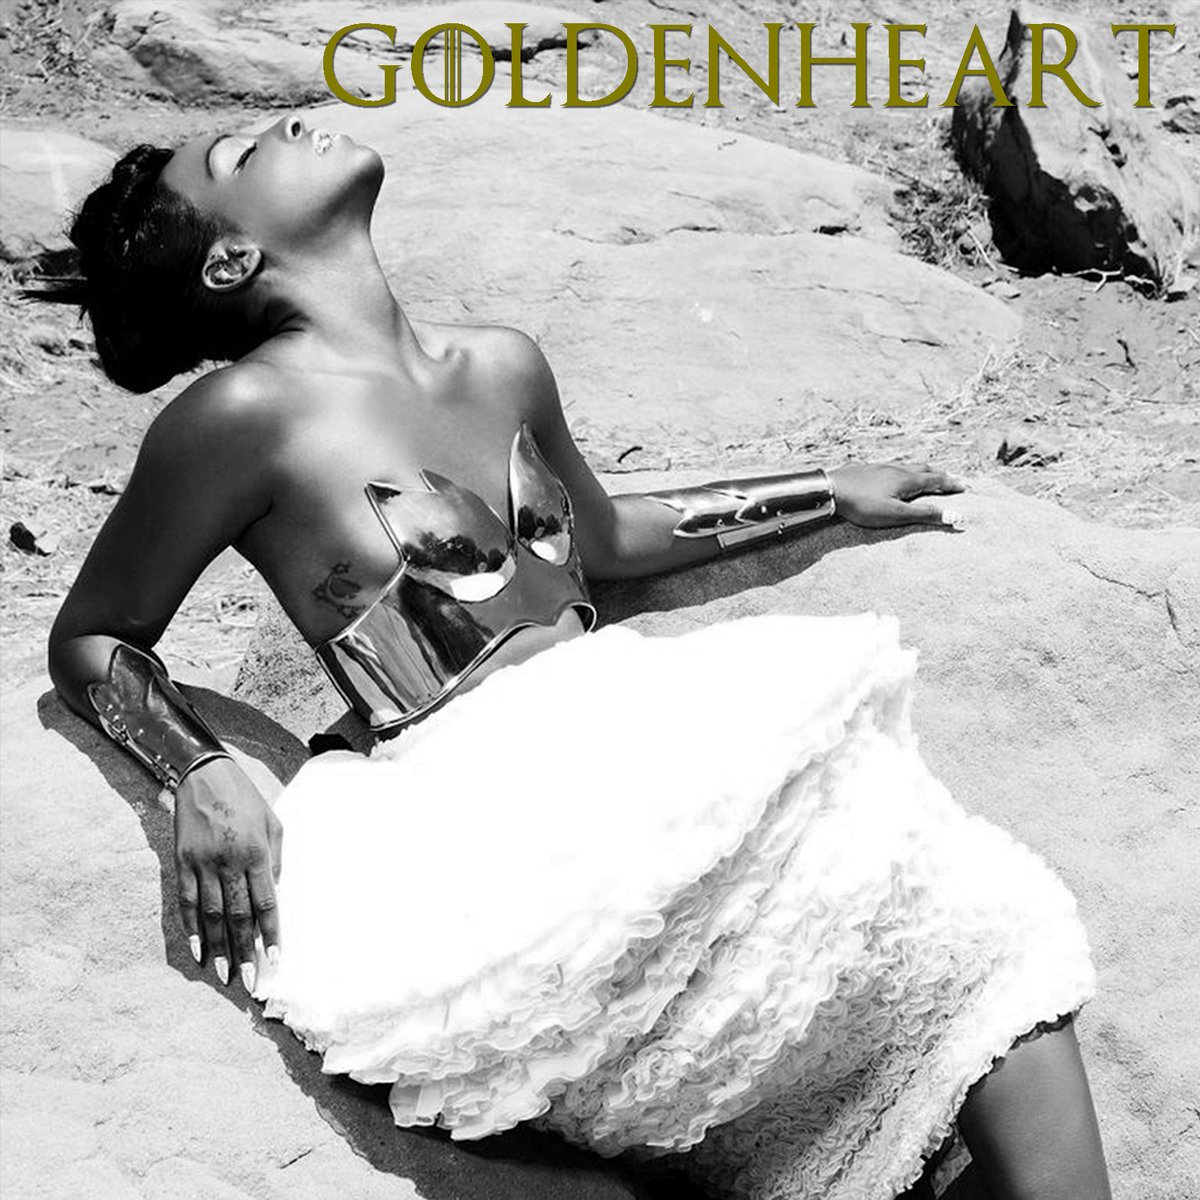 Happy 8th Year to one of my personal favorite albums of this lifetime, Goldenheart.   It's a fucking tour-de-force. This release, the pulse of the Hearts, the determination....  Moment was full of grit and it was pure gold.